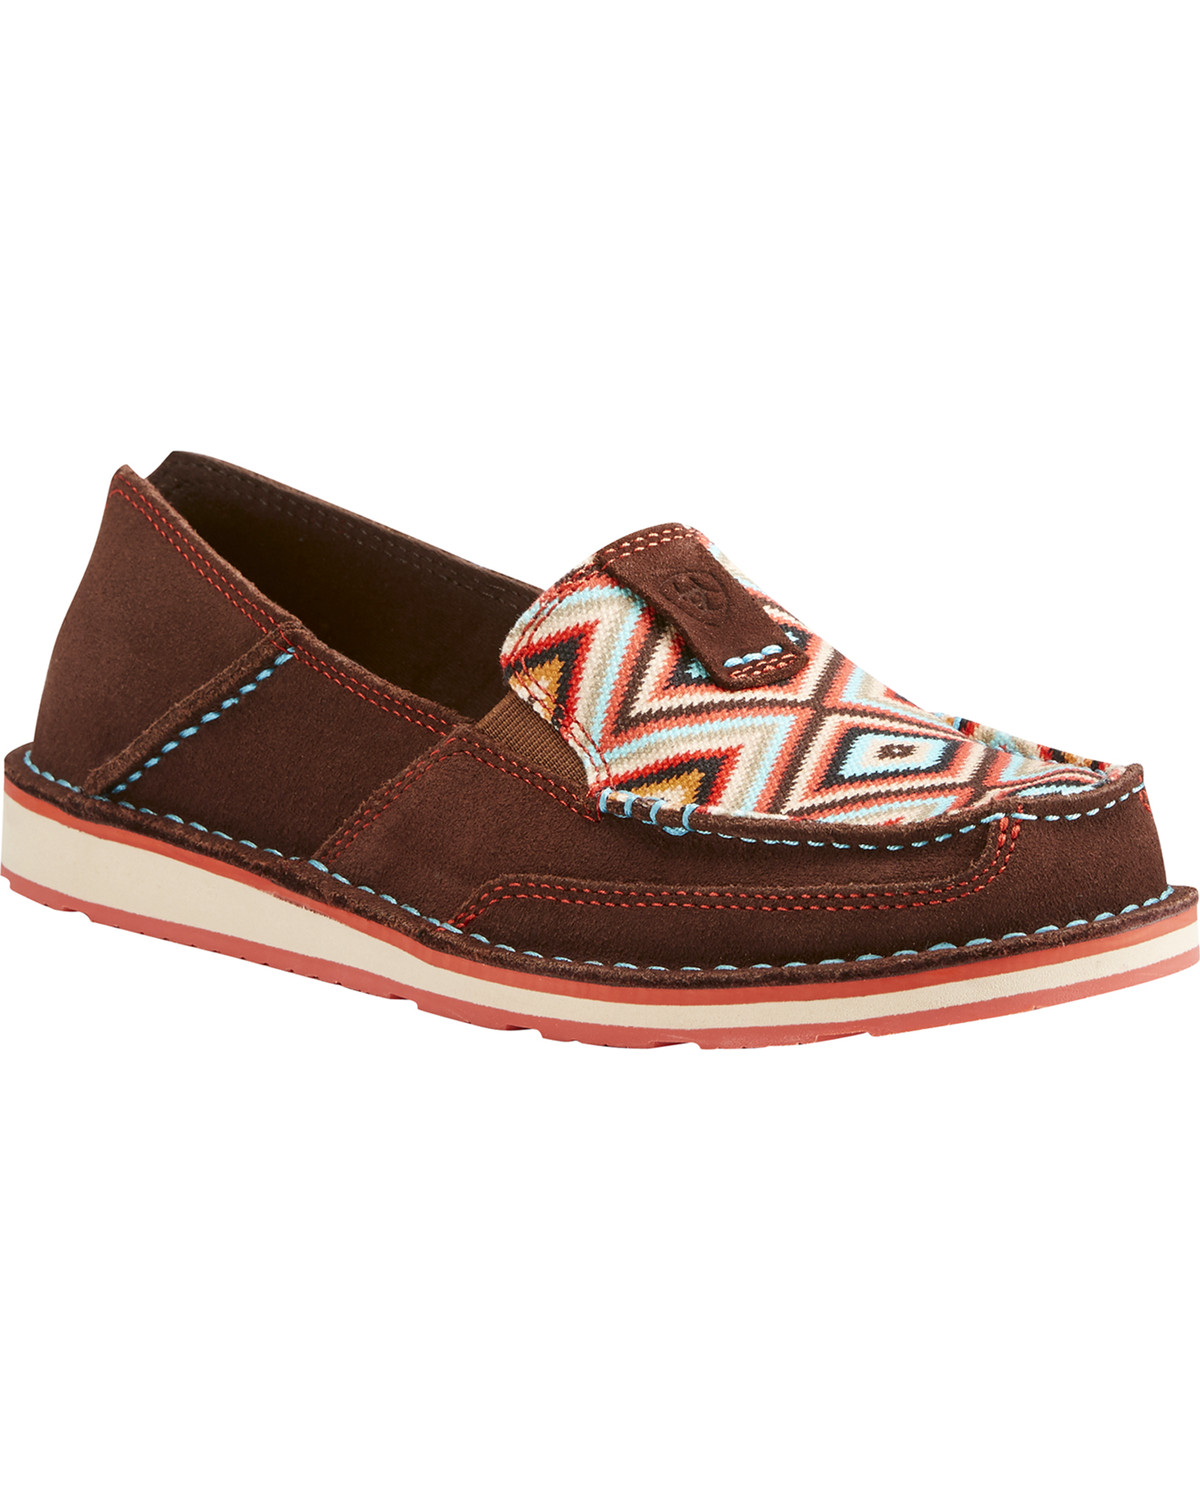 753ac1a5e72e Zoomed Image Ariat Women's Aztec Cruiser Shoes - Moc Toe , Multi, ...